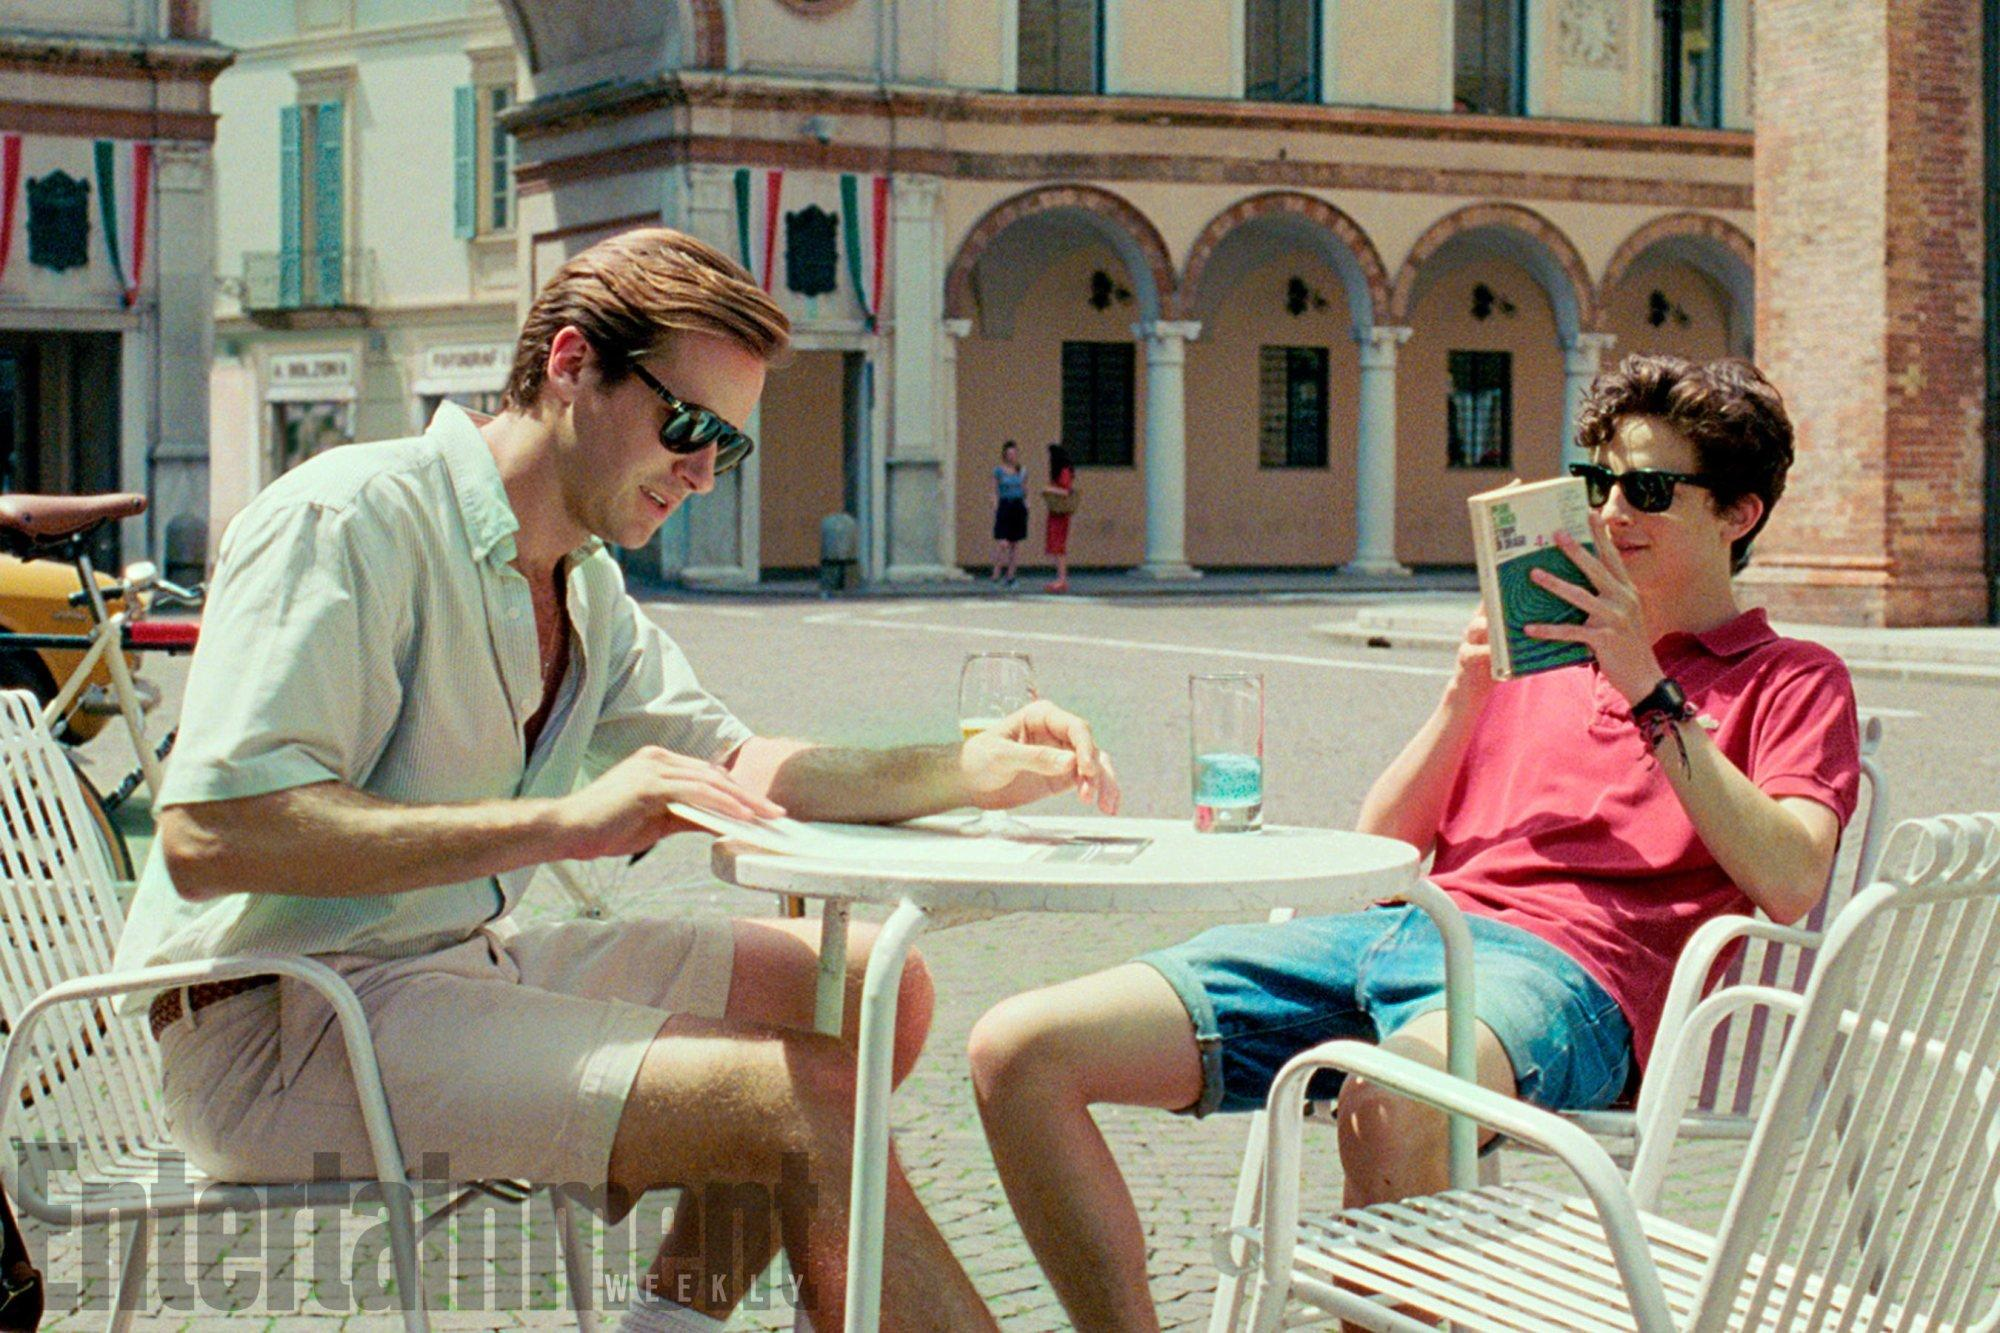 "Set in 1983 Italy, Luca Guadagnino's ""Call Me by Your Name"" details the beauty of summer romance through an artistic take on a coming-of-age film. Photo: The Oscars Official Website"